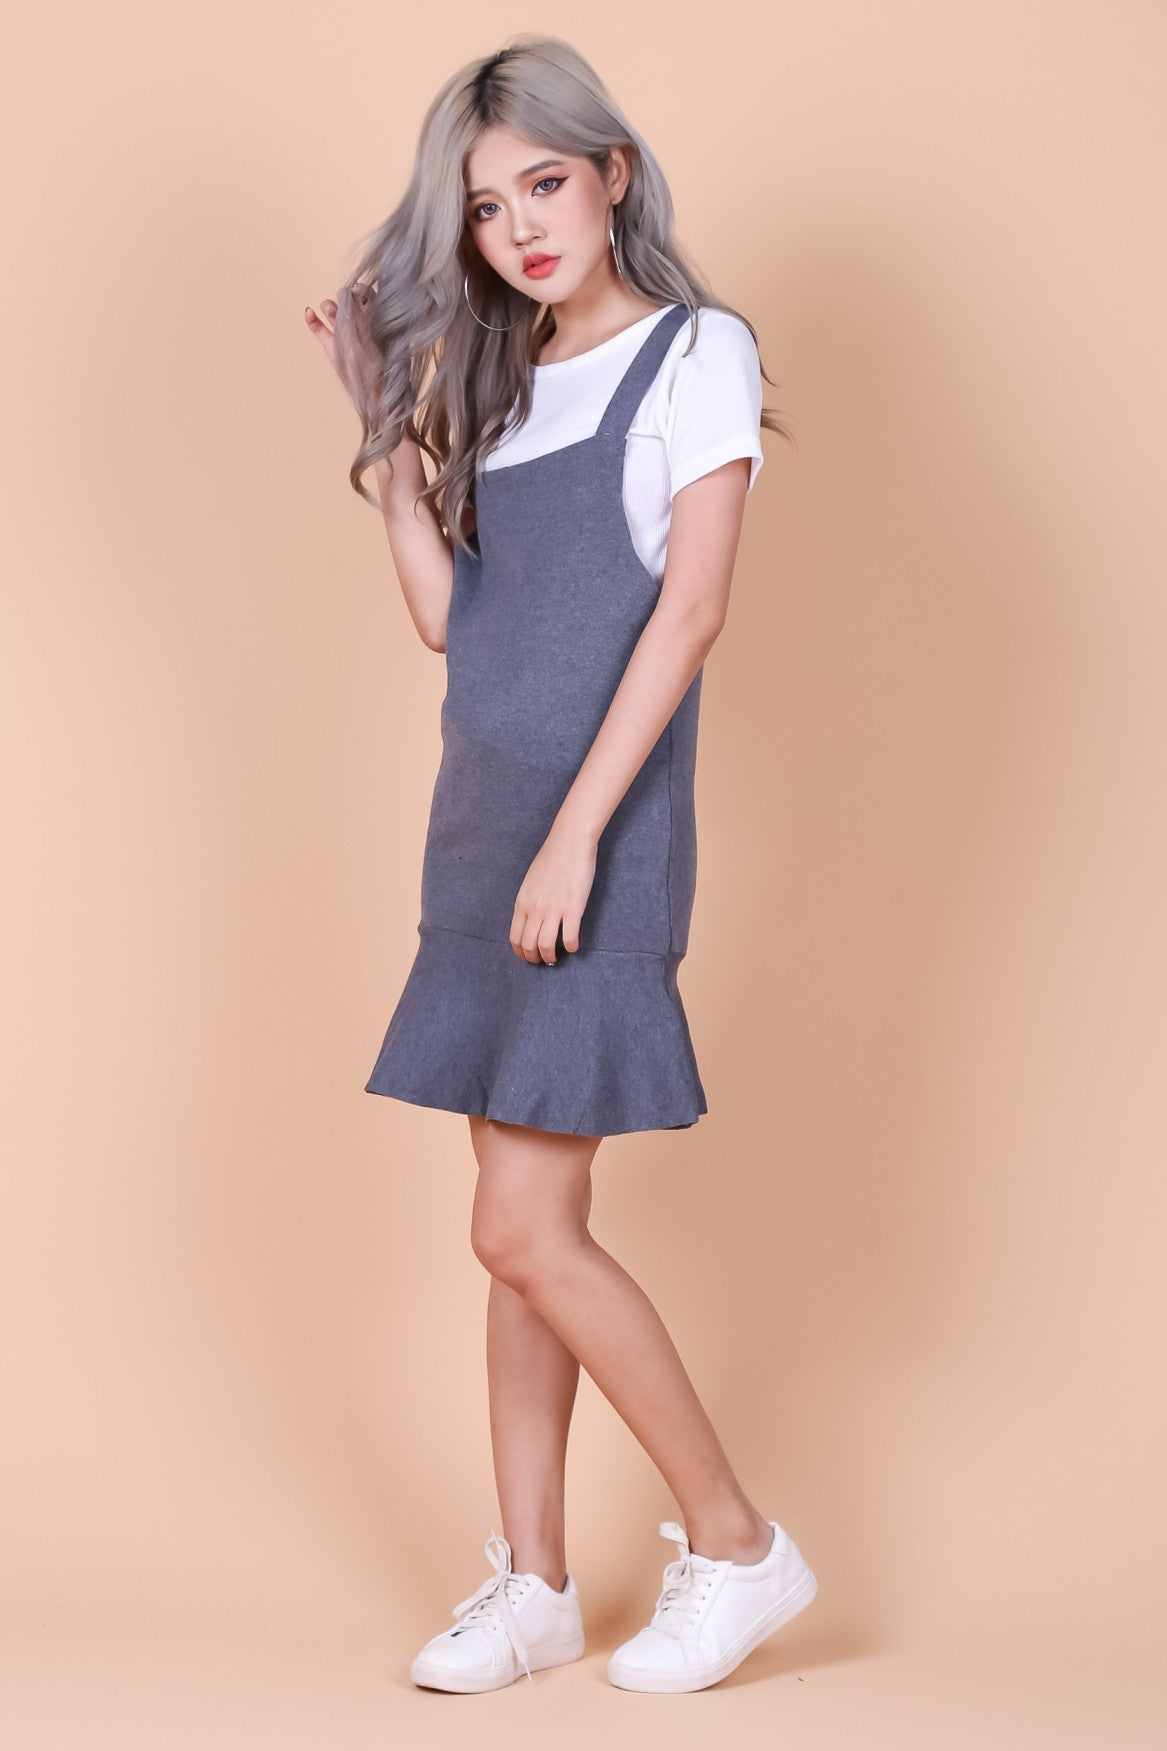 *RESTOCKED* MERMAID DUNGAREE 2 PC SET IN GREY - TOPAZETTE